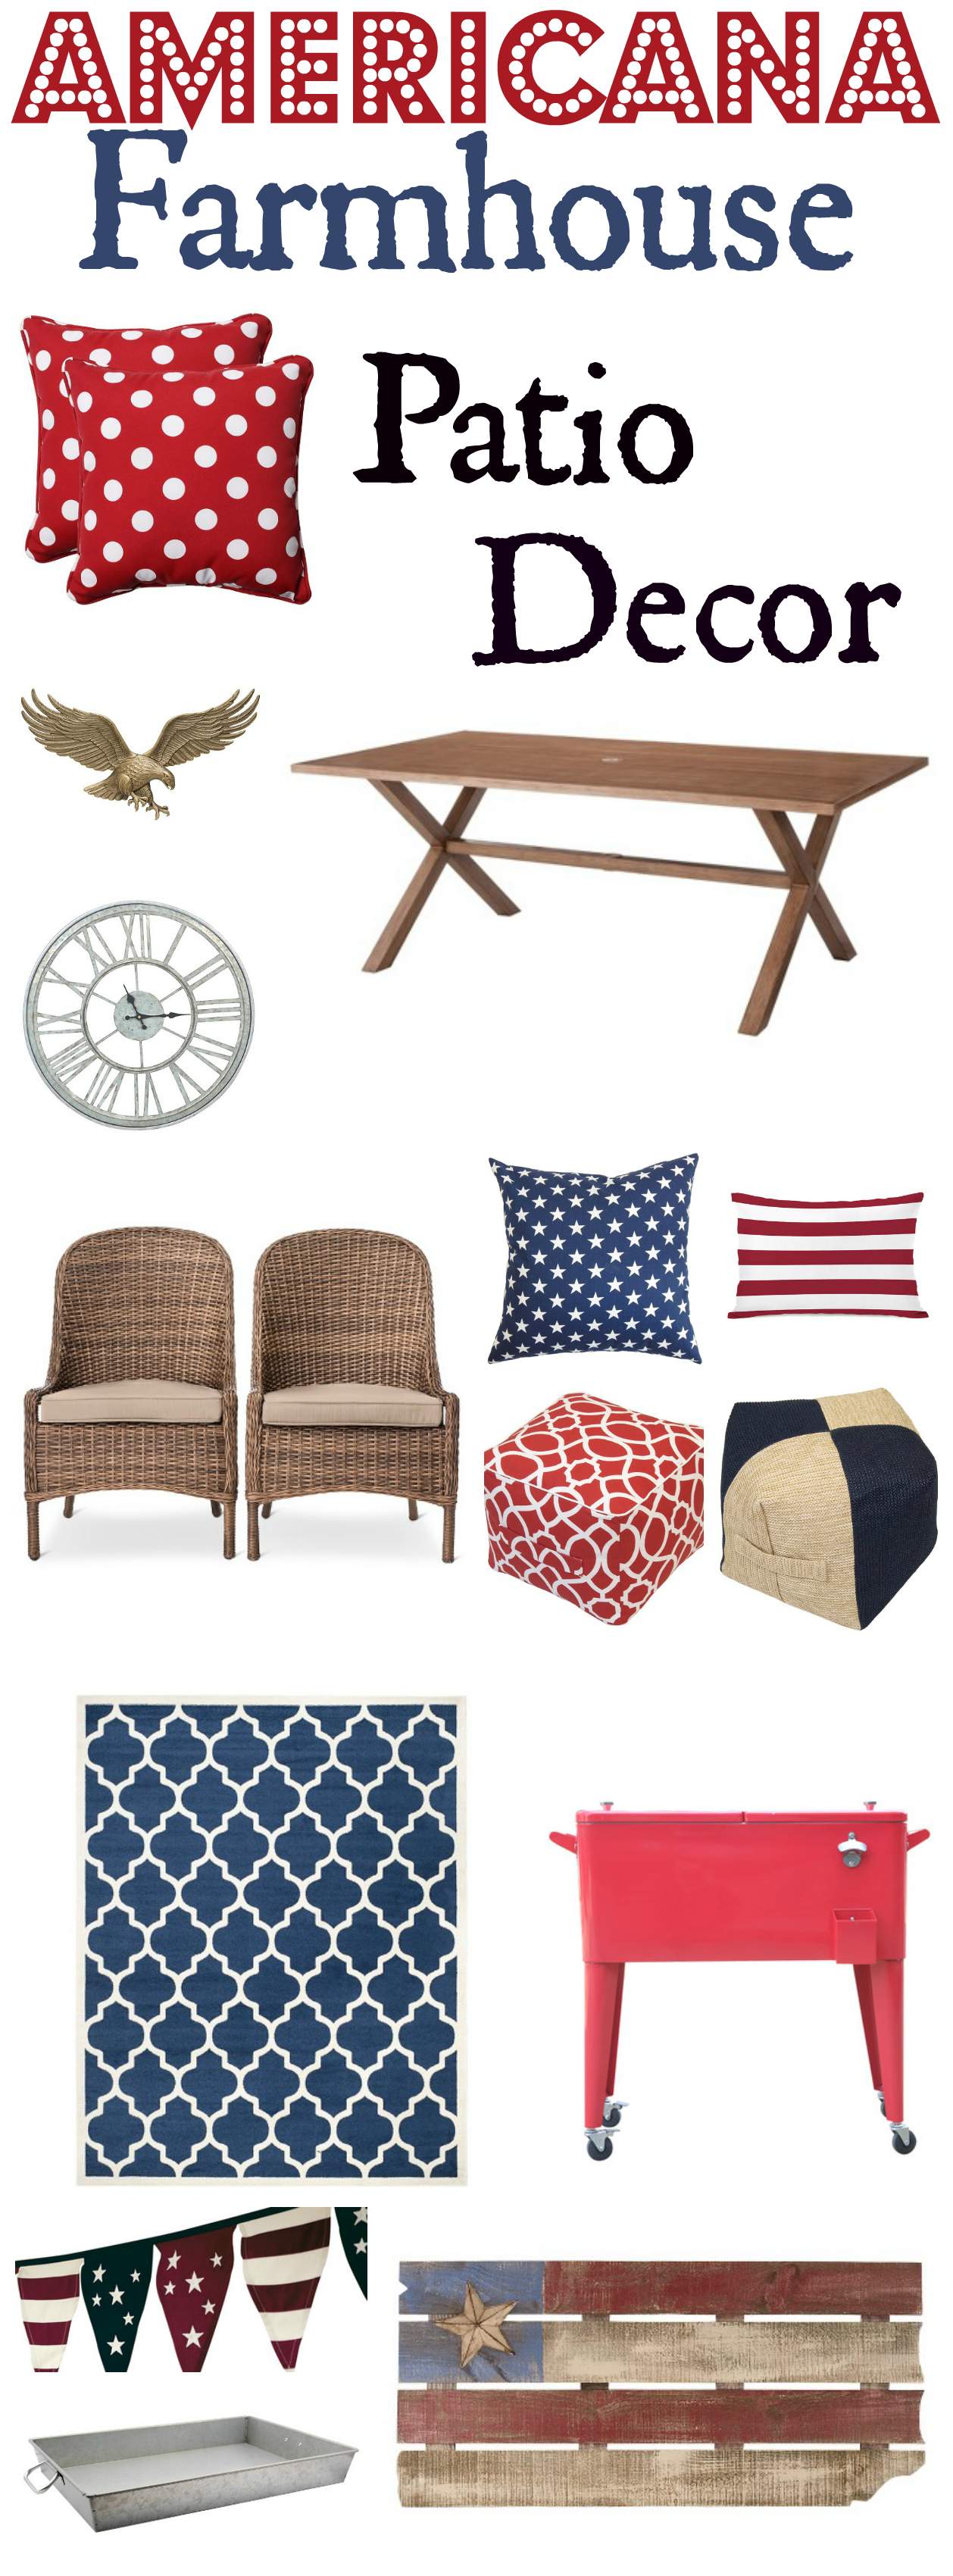 Patriotic Patio Decor Ideas